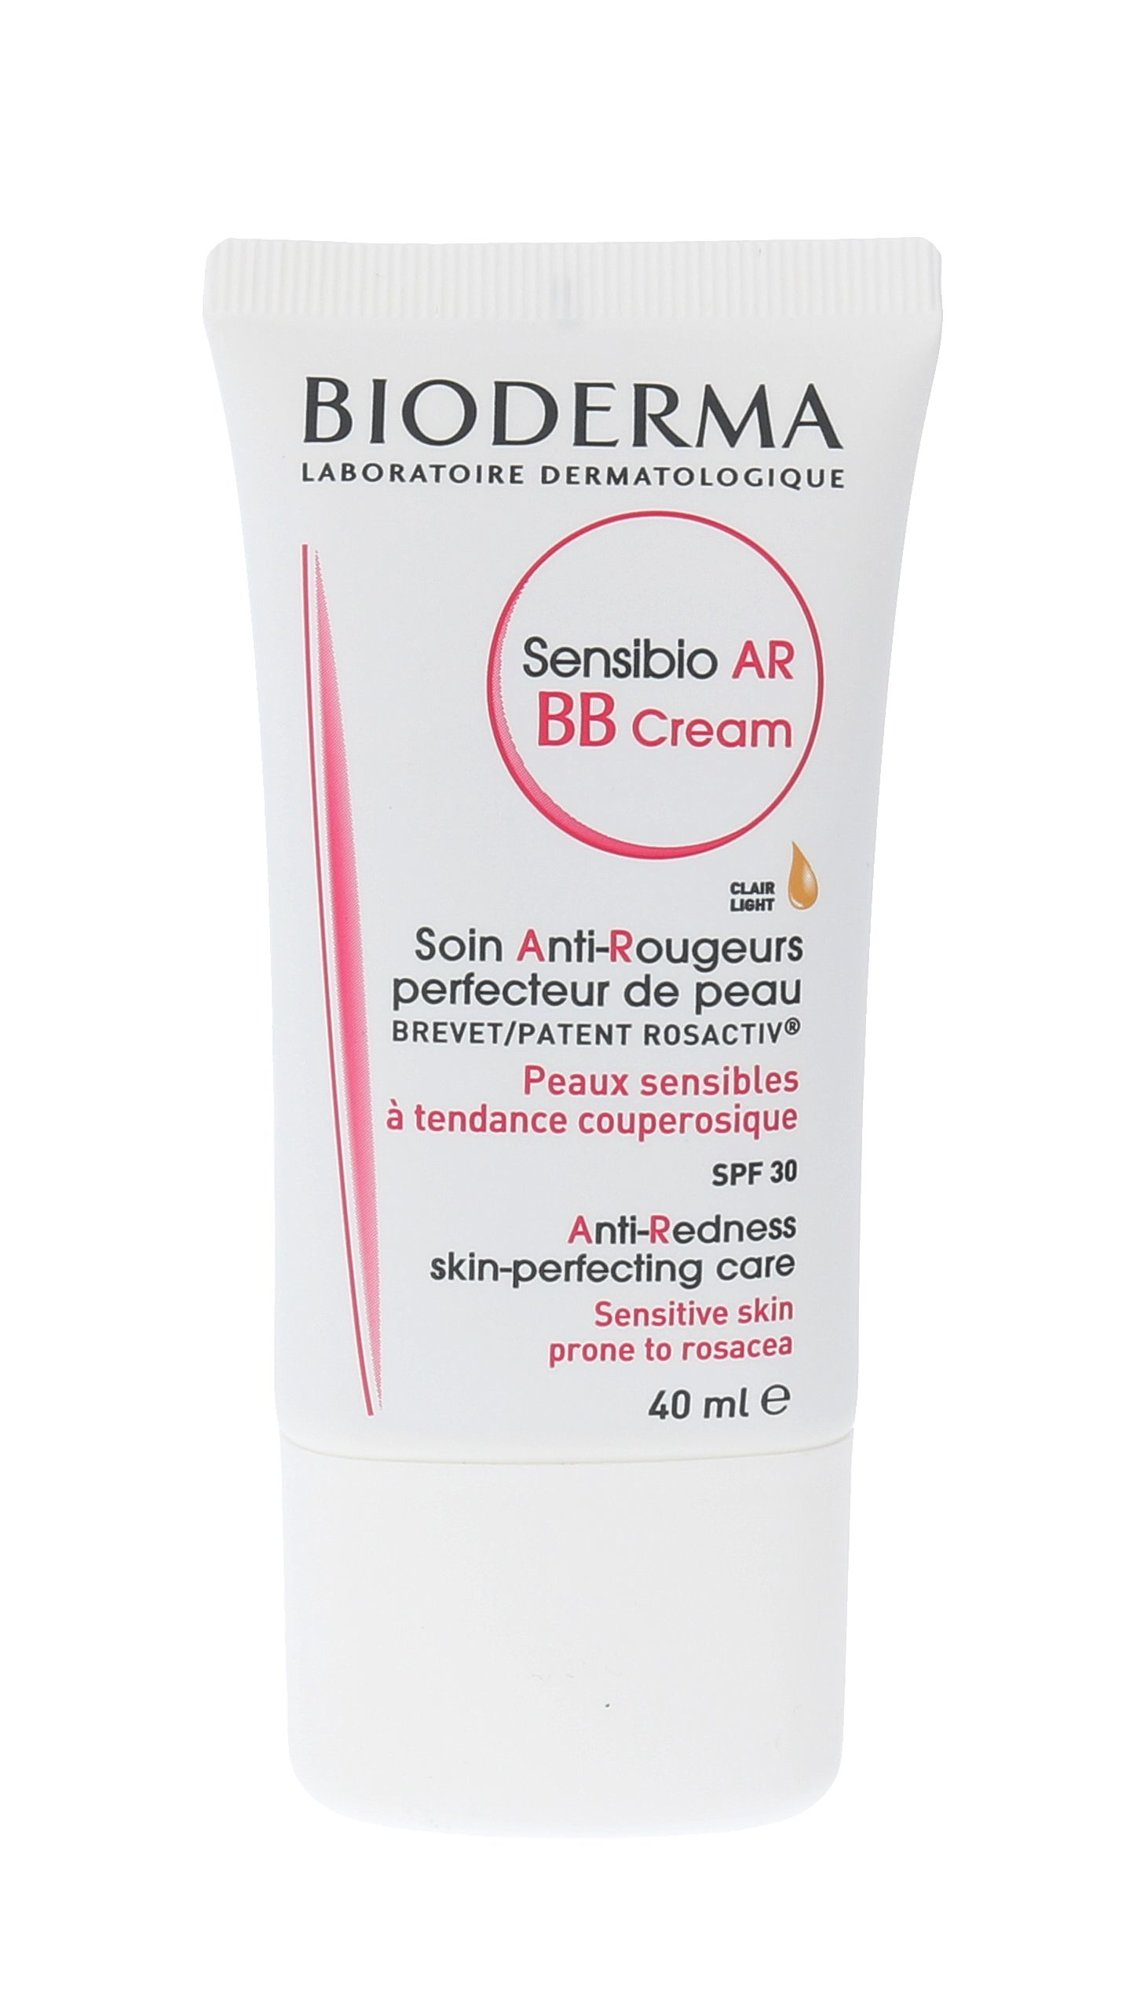 BIODERMA Sensibio Cosmetic 40ml Clair Light